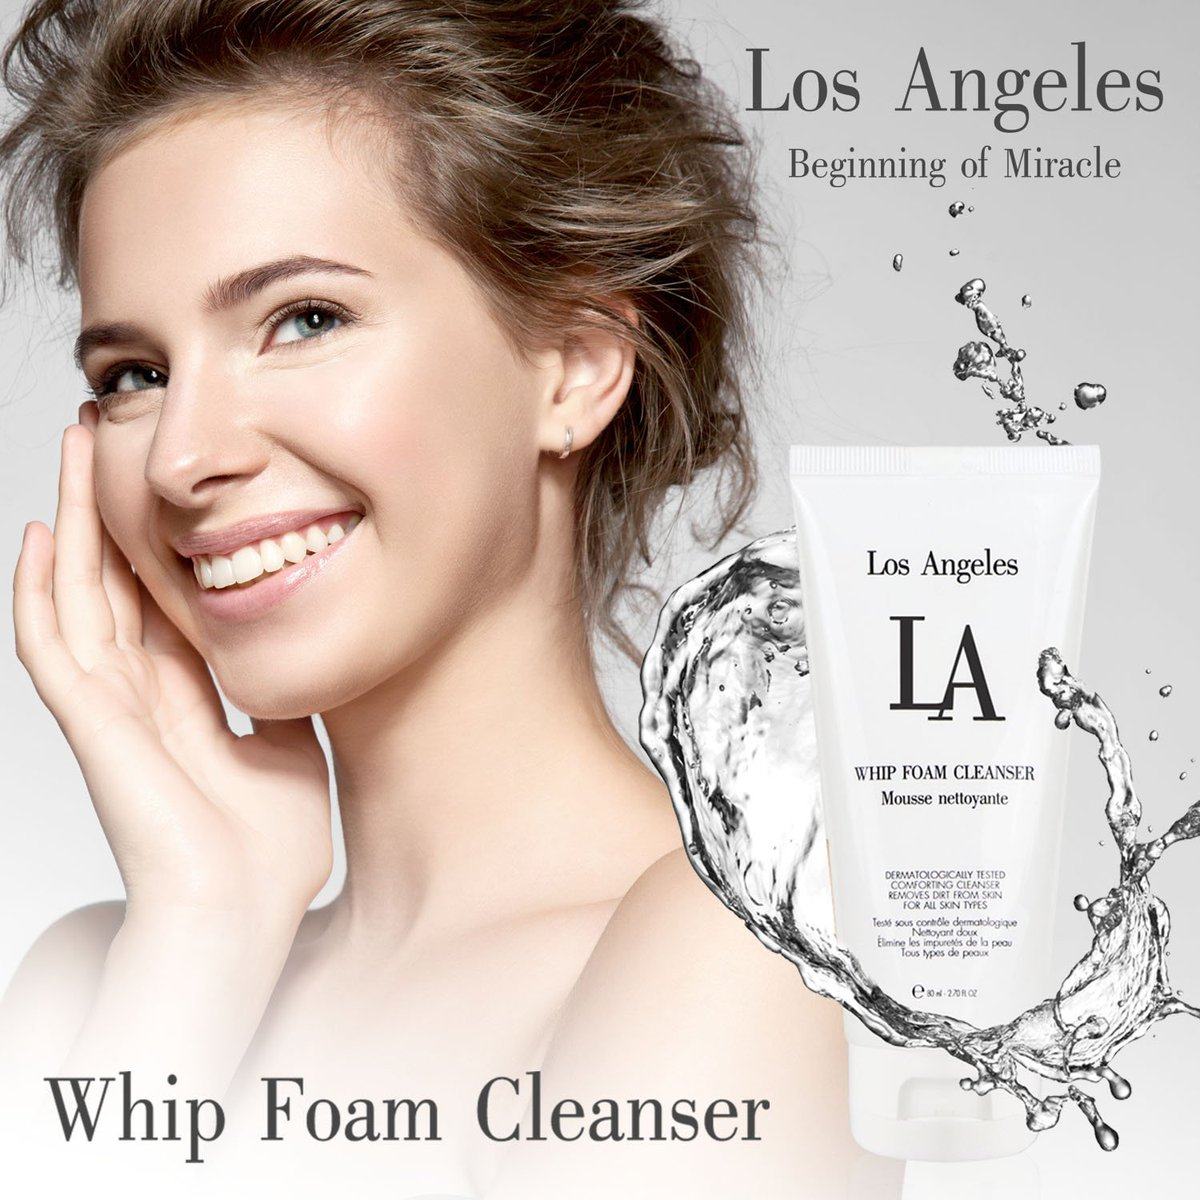 Jill Beauty Cleansing Foam Whipfoamcleanserusa Hashtag On Twitter